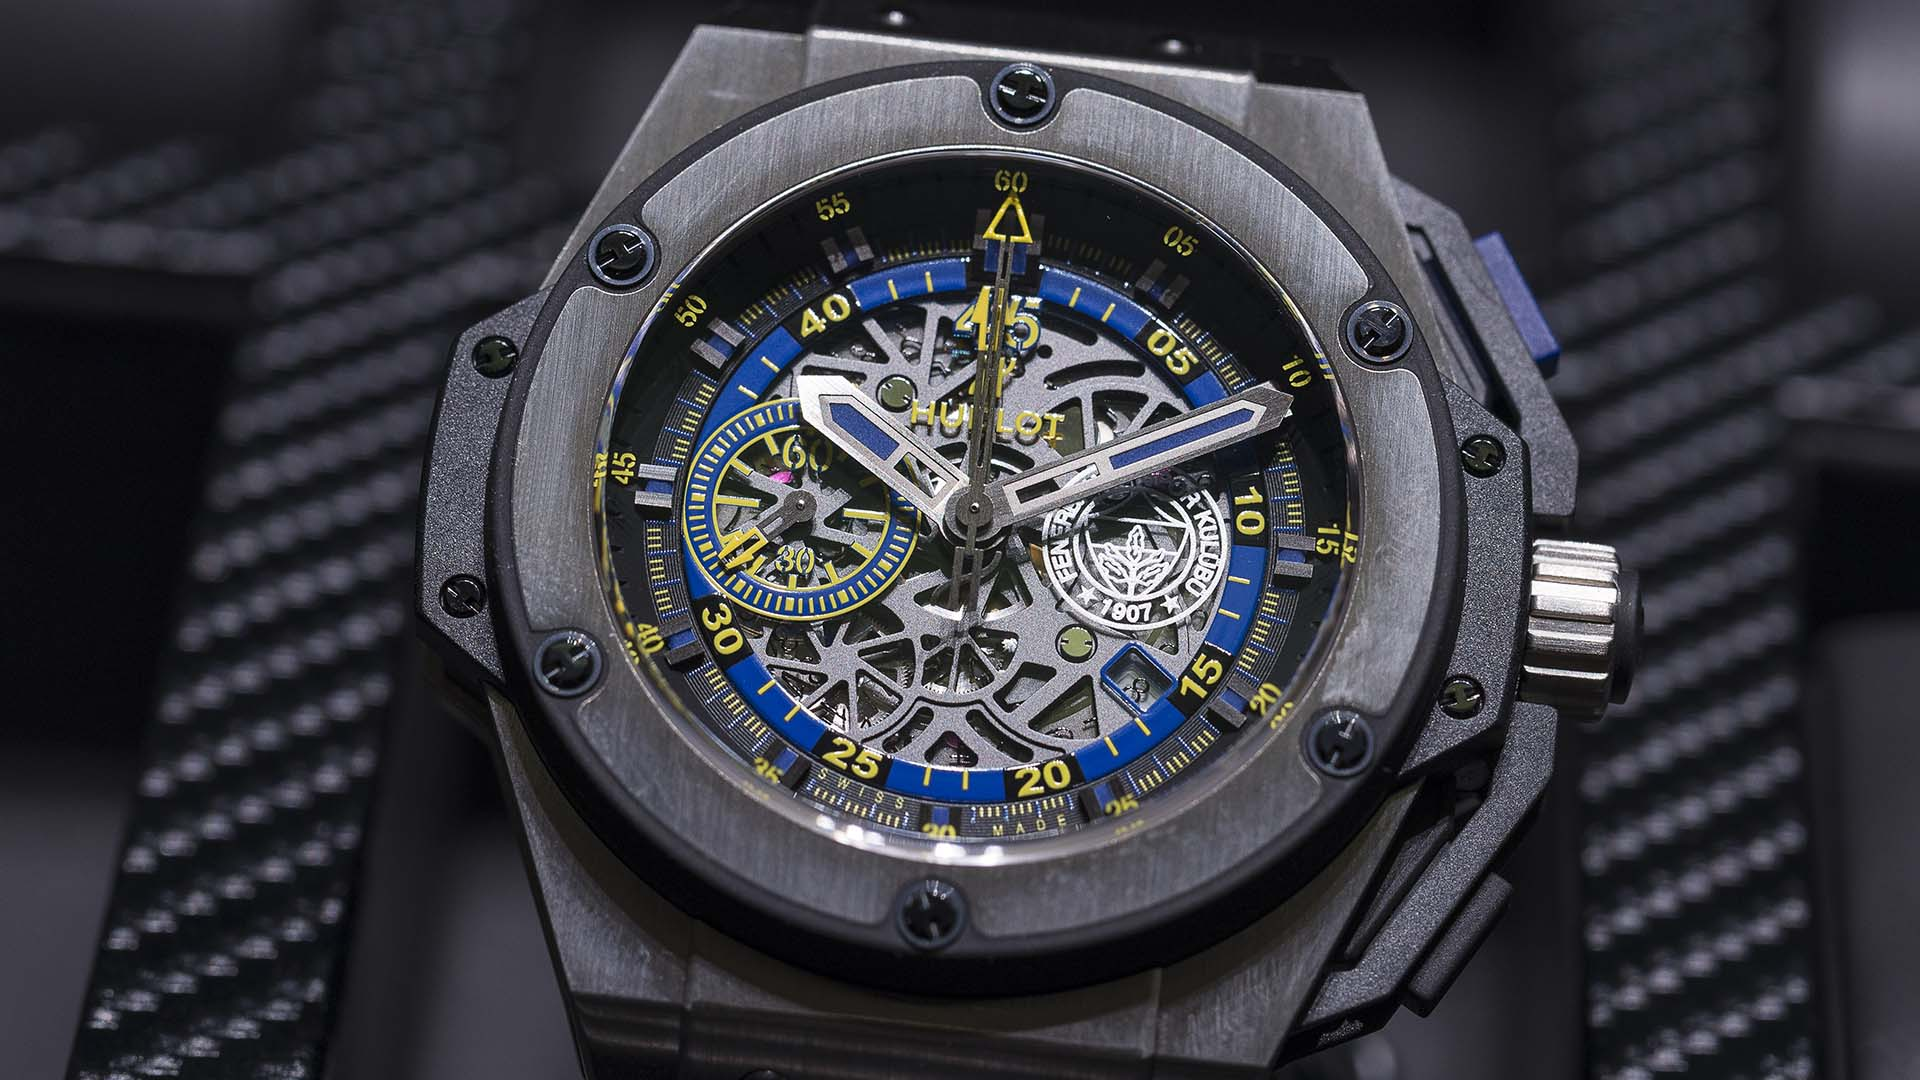 Hublot_King_Power_Fenerbahce_716-NX-0119-RX-FCF14_0025.jpeg